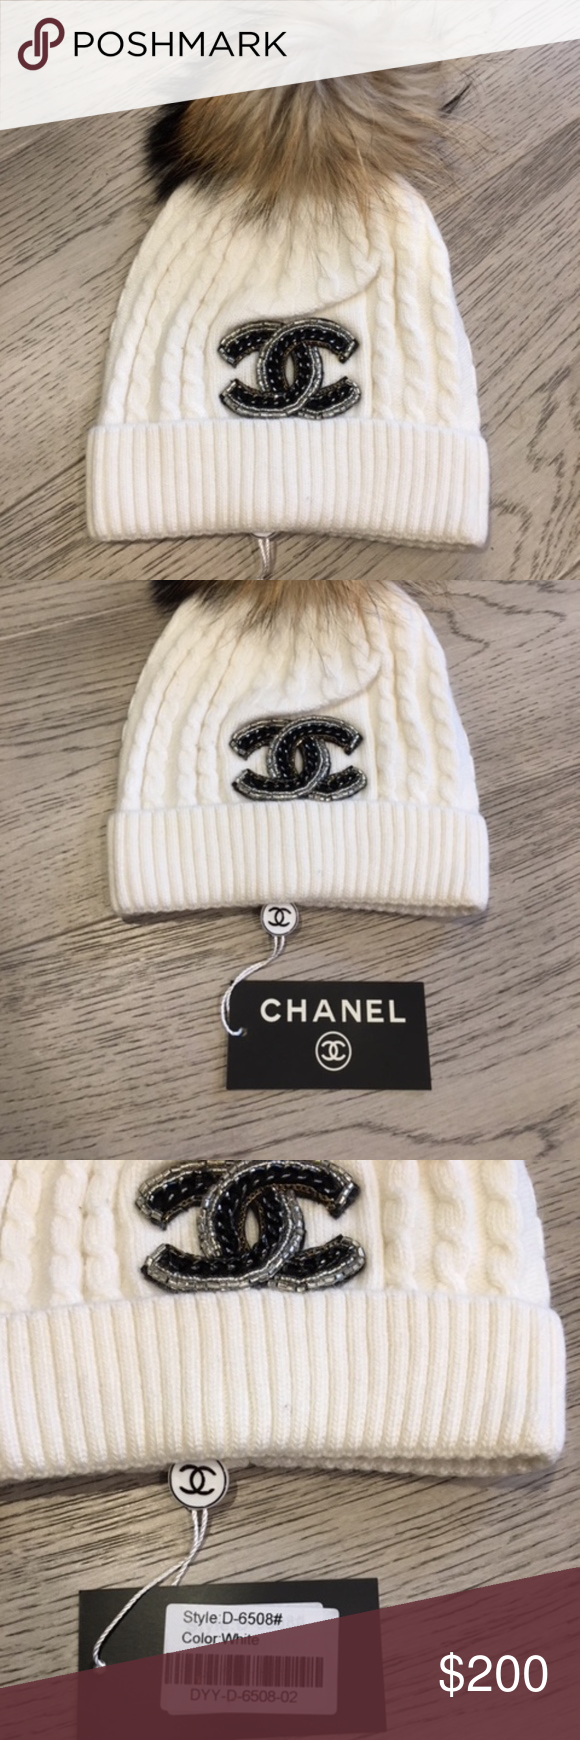 NWT Chanel Knit Wool Rabbit Hair Hat with Pom Pom Brand new. One size fits  most. Pom Pom is made of rabbit fur. Very warm. CHANEL Accessories Hats 34ed574007c